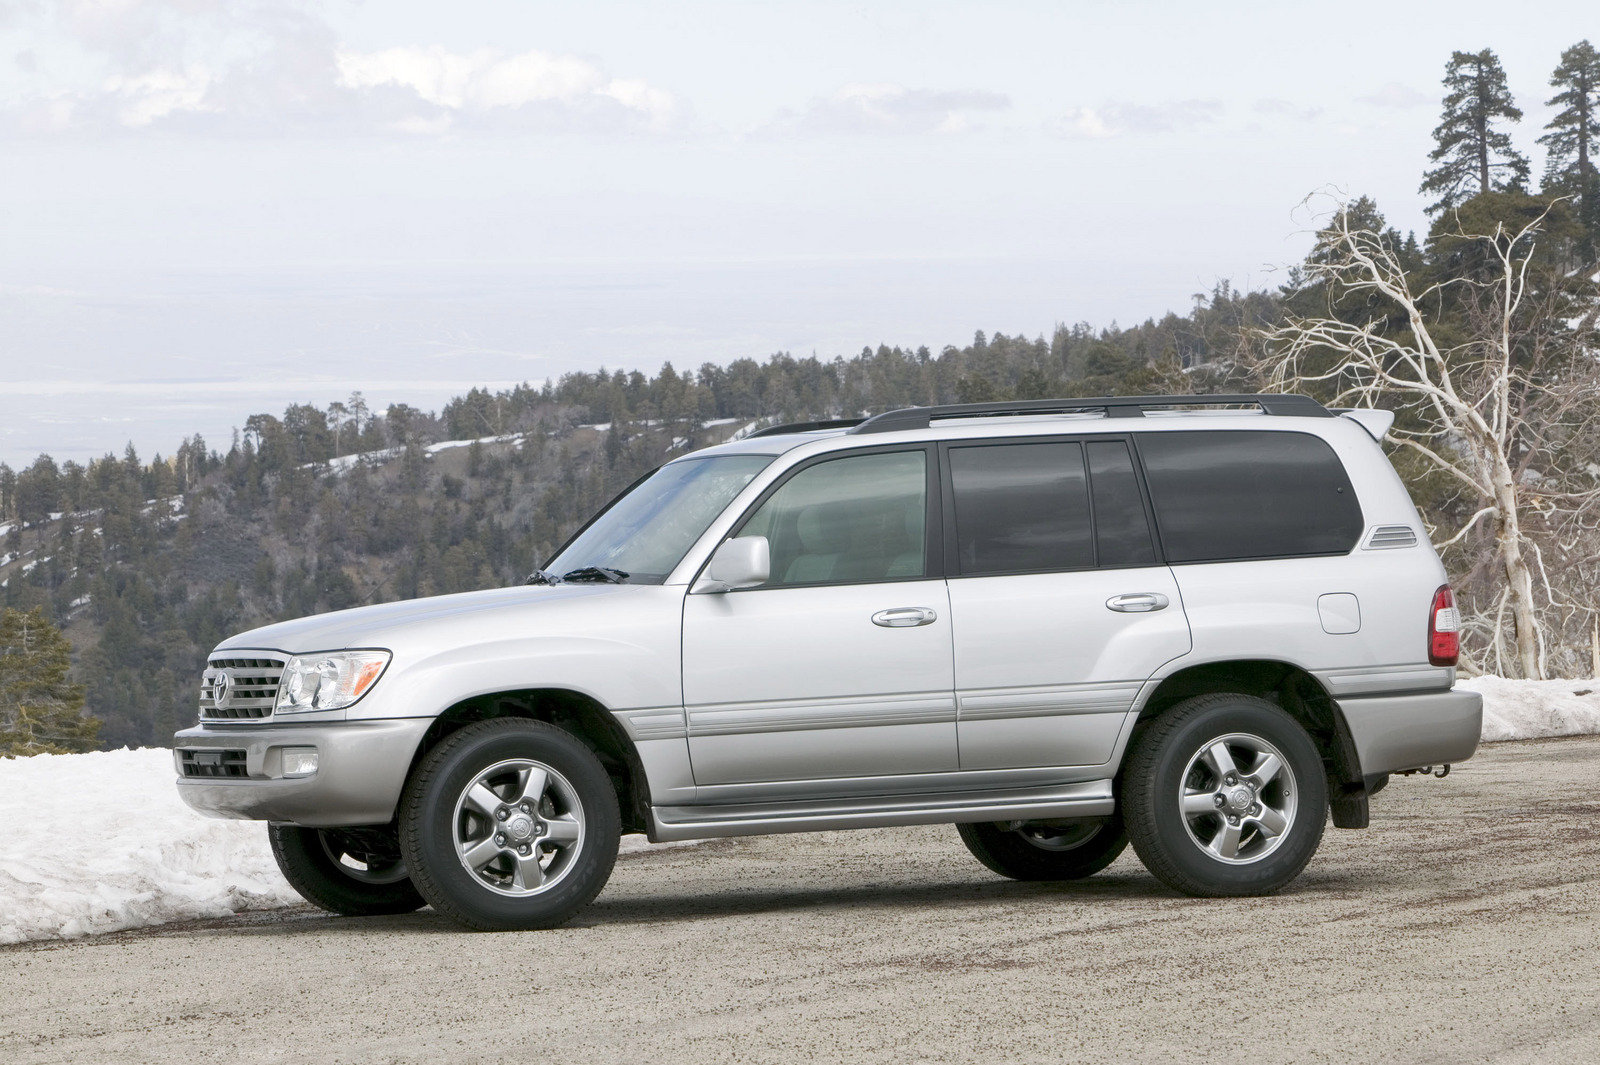 2006 toyota land cruiser picture 94385 car review. Black Bedroom Furniture Sets. Home Design Ideas